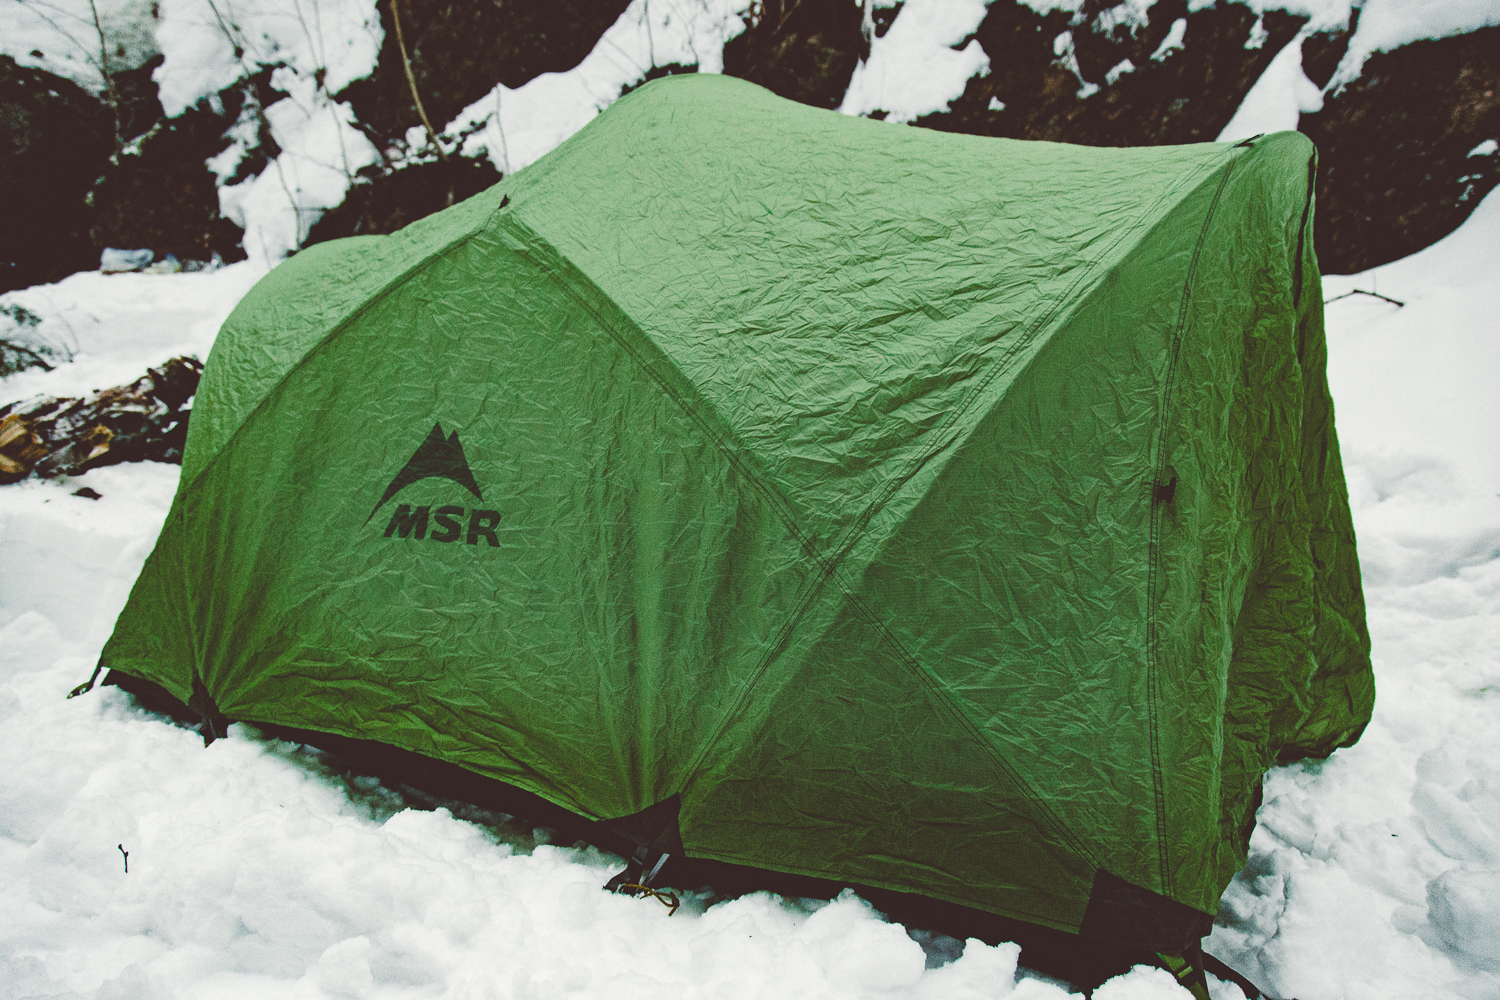 audet_photo_camping_hiver_13